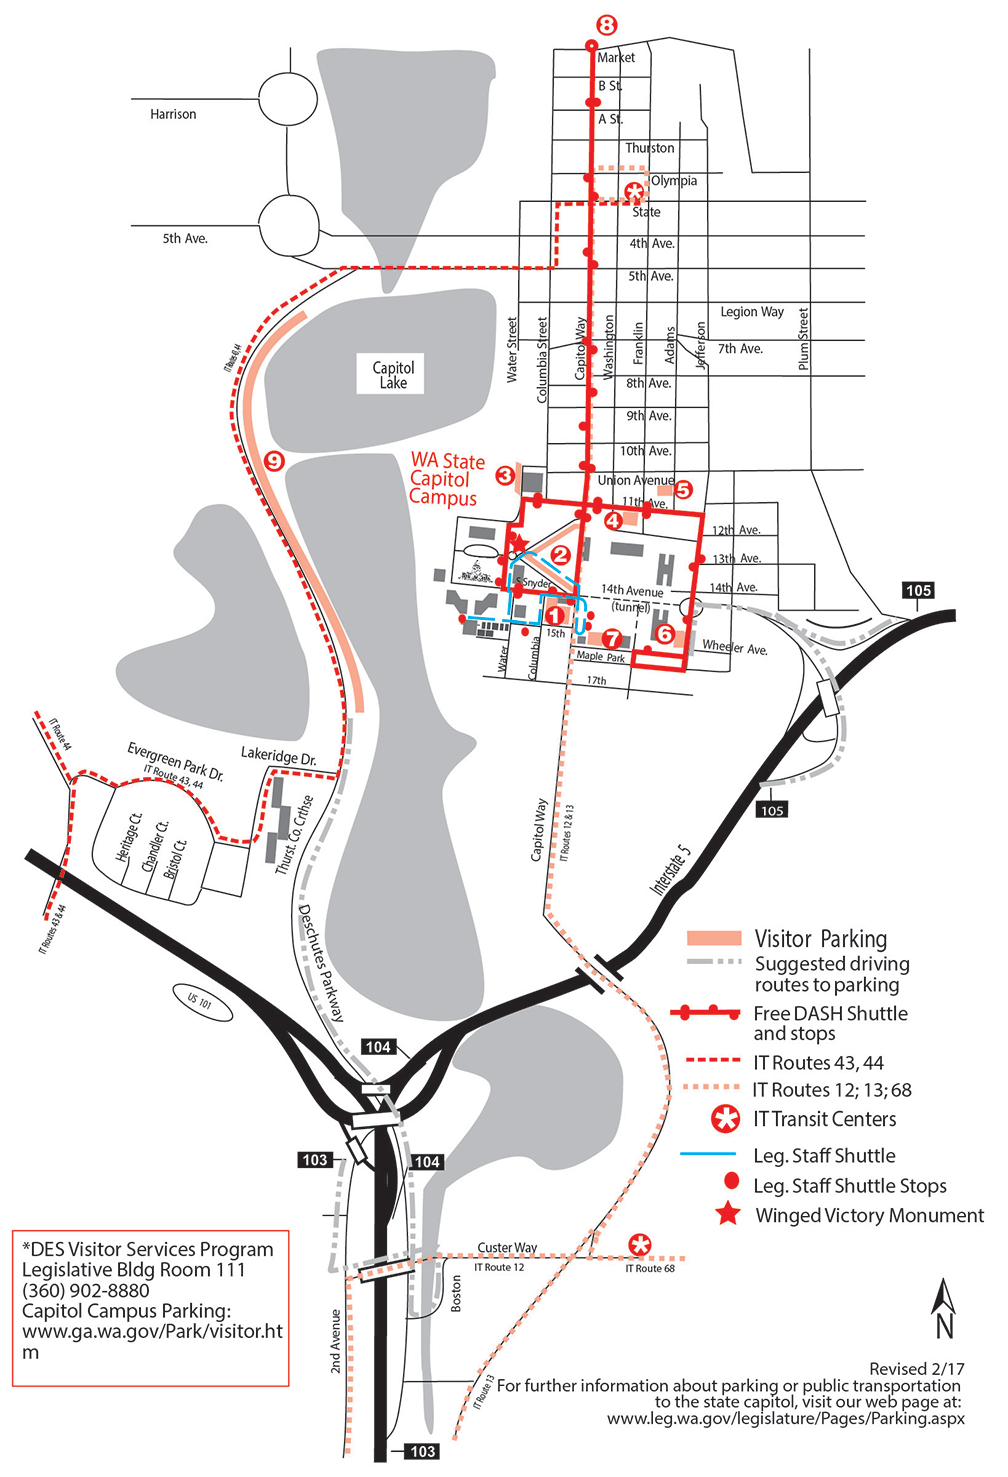 Map of parking locations